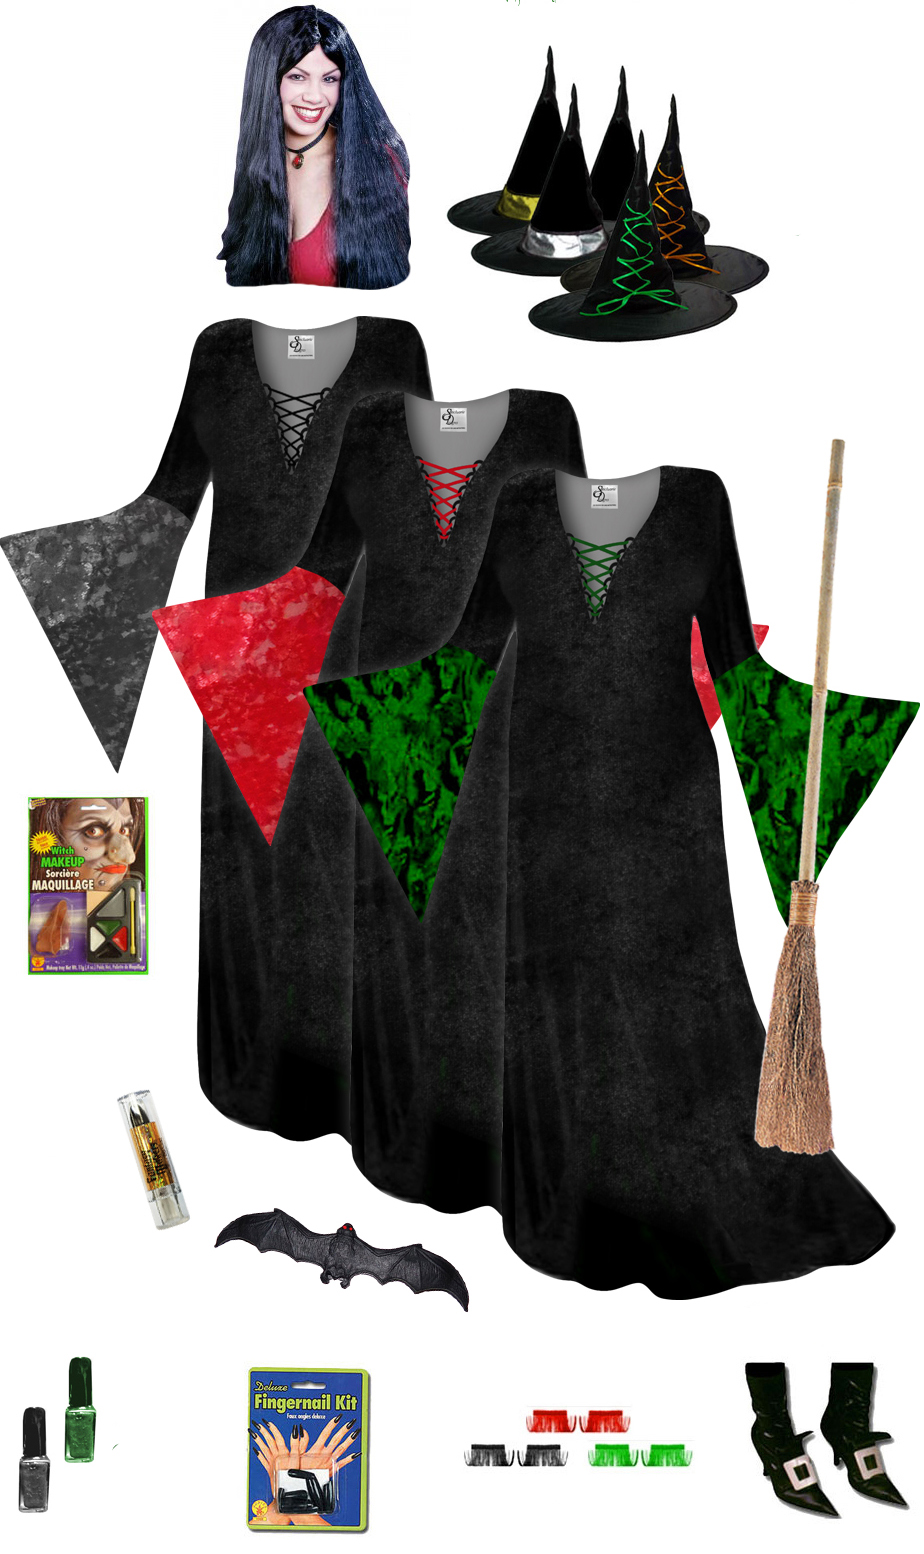 final clearance sale! plus size witch costume and accessories! plus